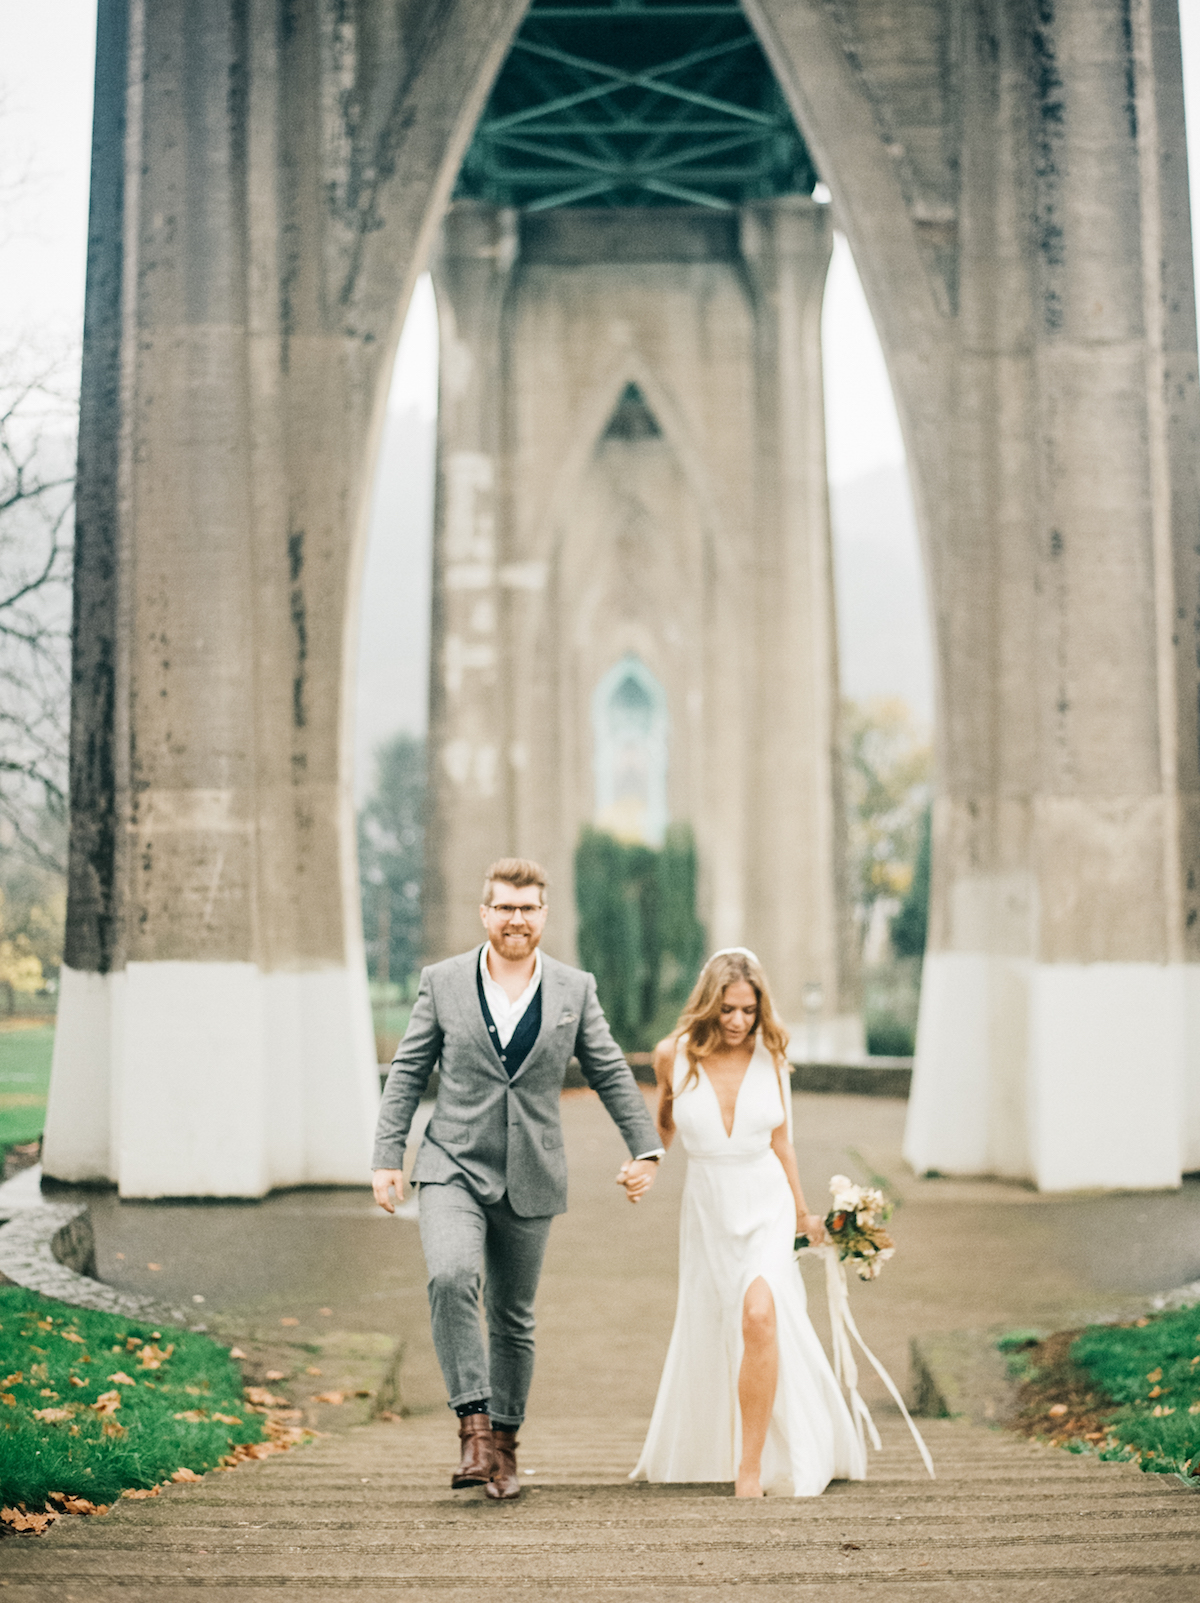 Ira and Lucy Wedding Planner, Kendra Elise Photography, Portland Wedding